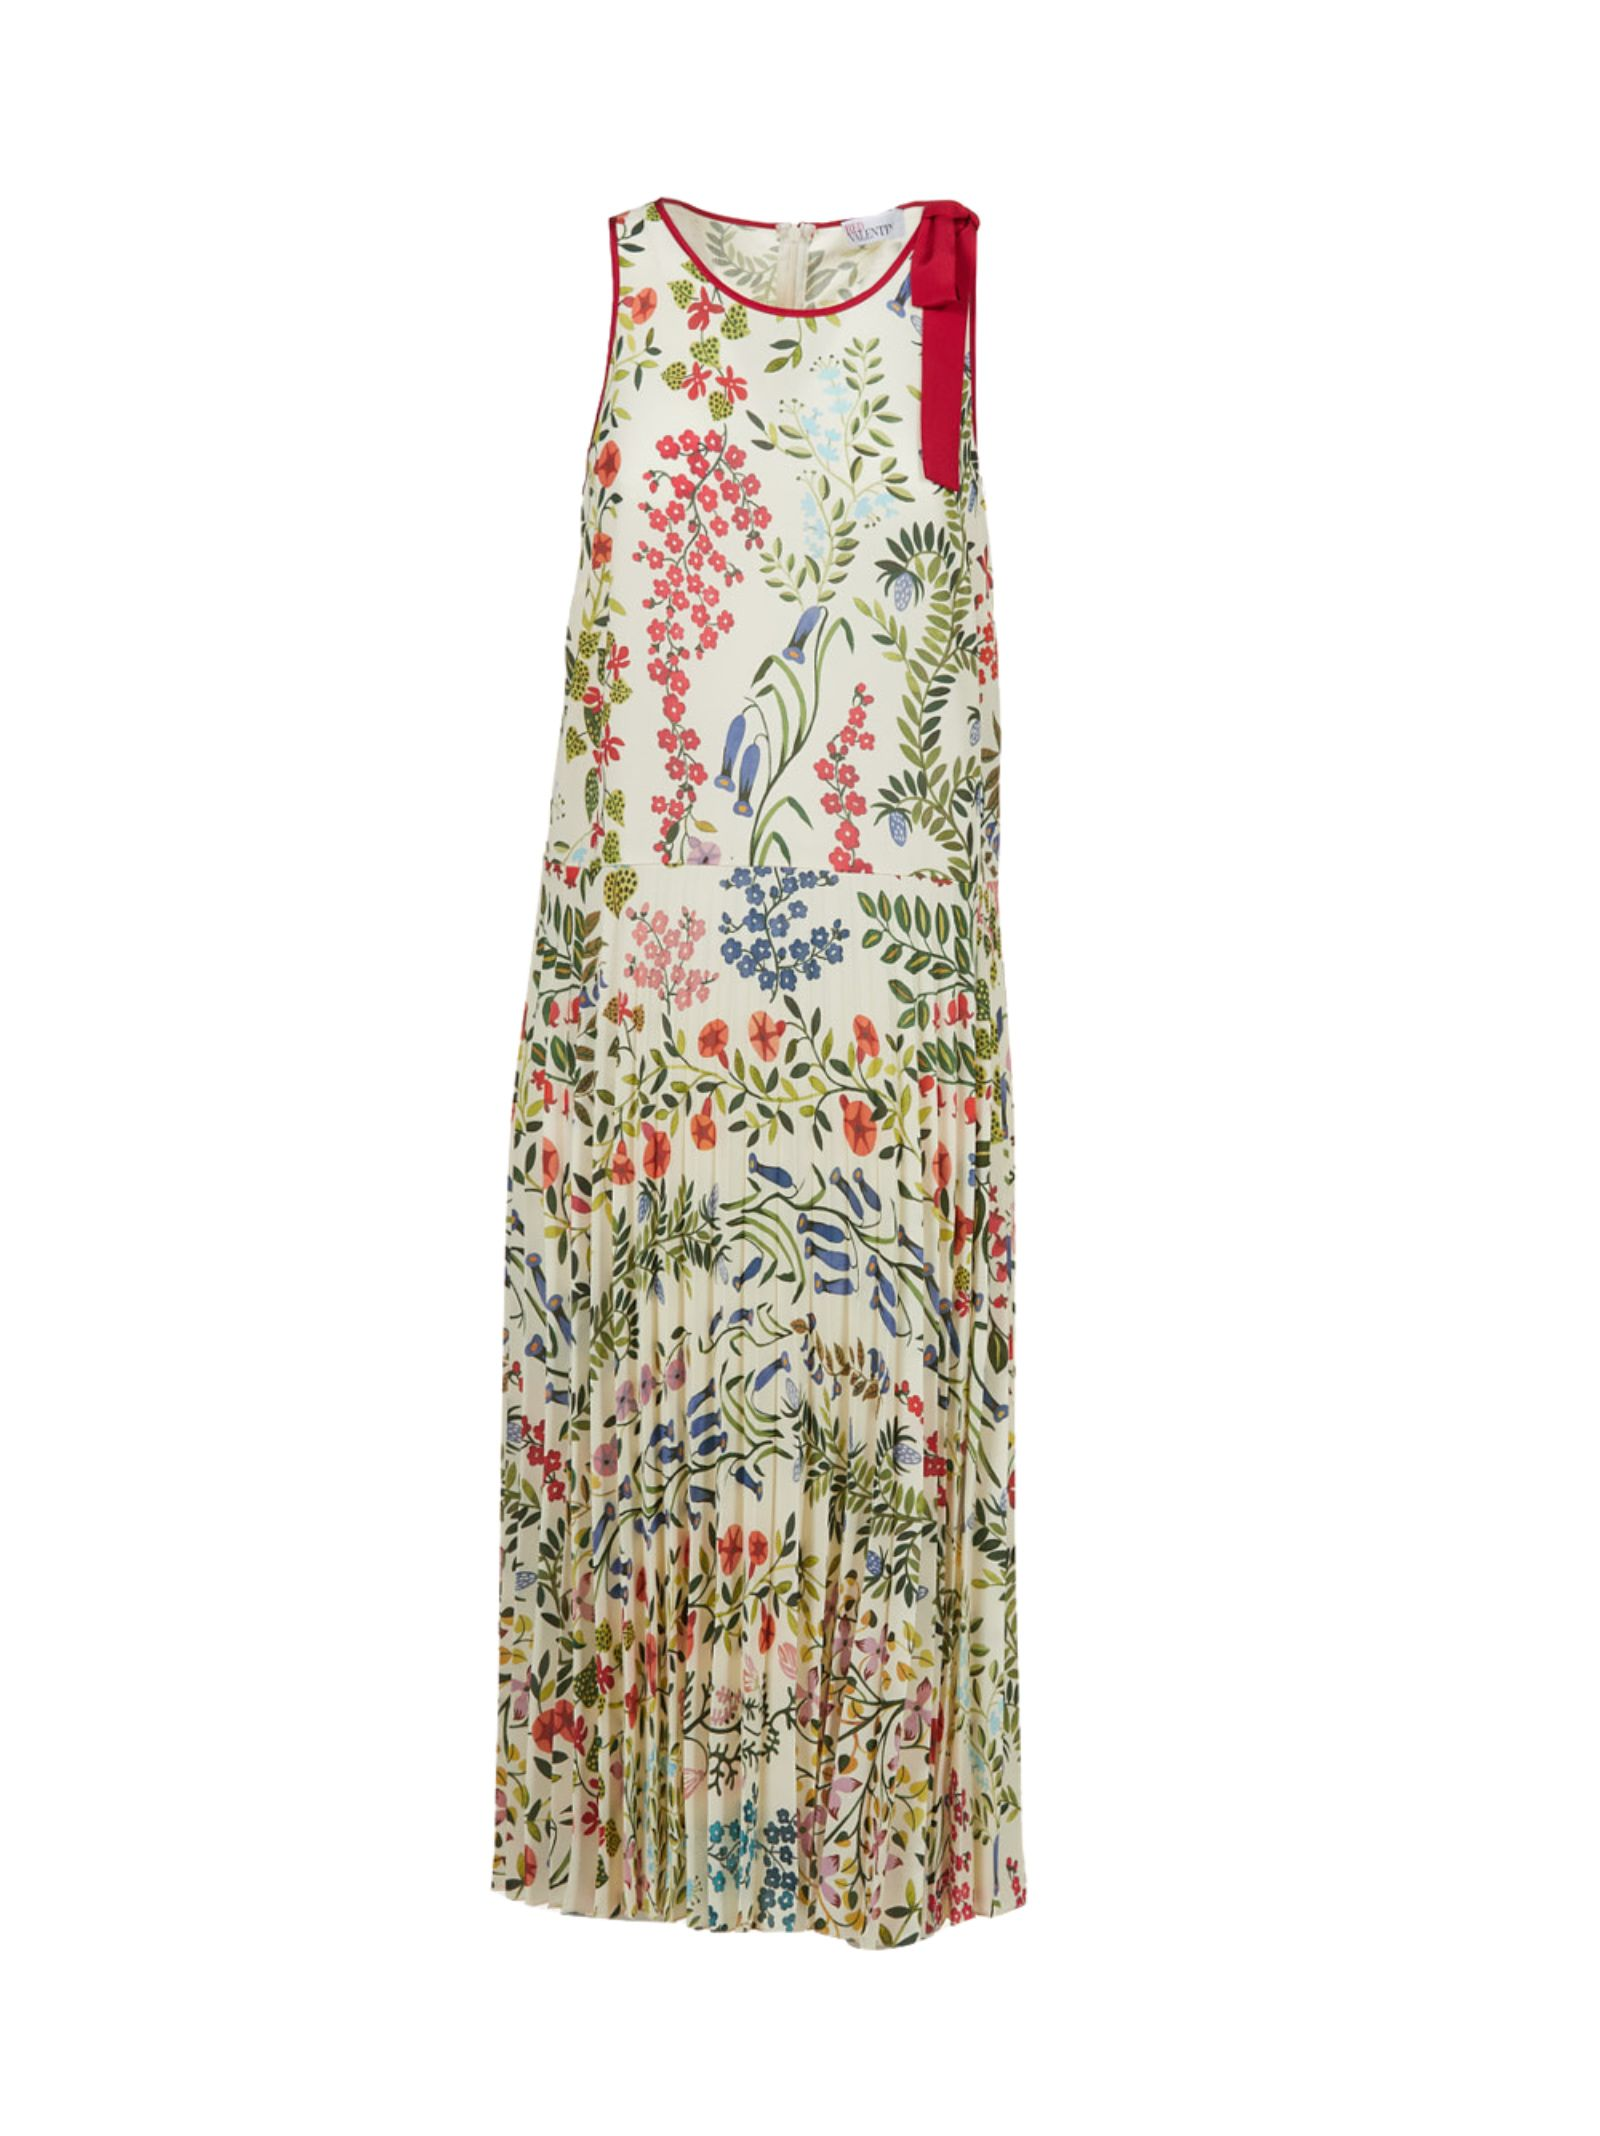 RED VALENTINO PRINTED FLORAL DRESS